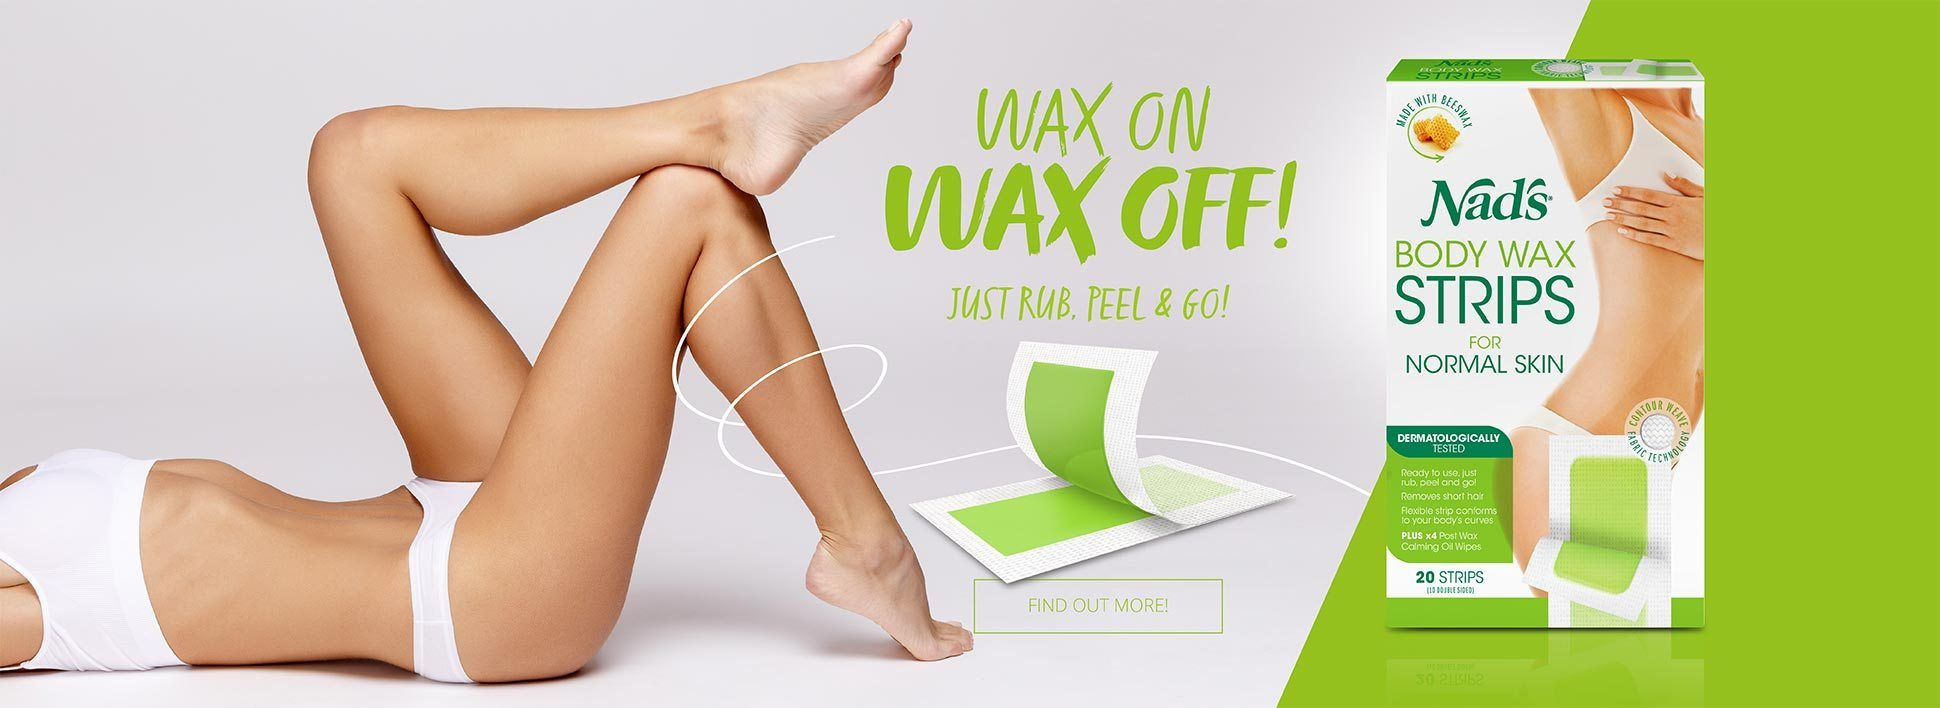 Nad's Natural Hair Removal Body Wax Strips | Wax On Wax Off - Just Rub peel and Go